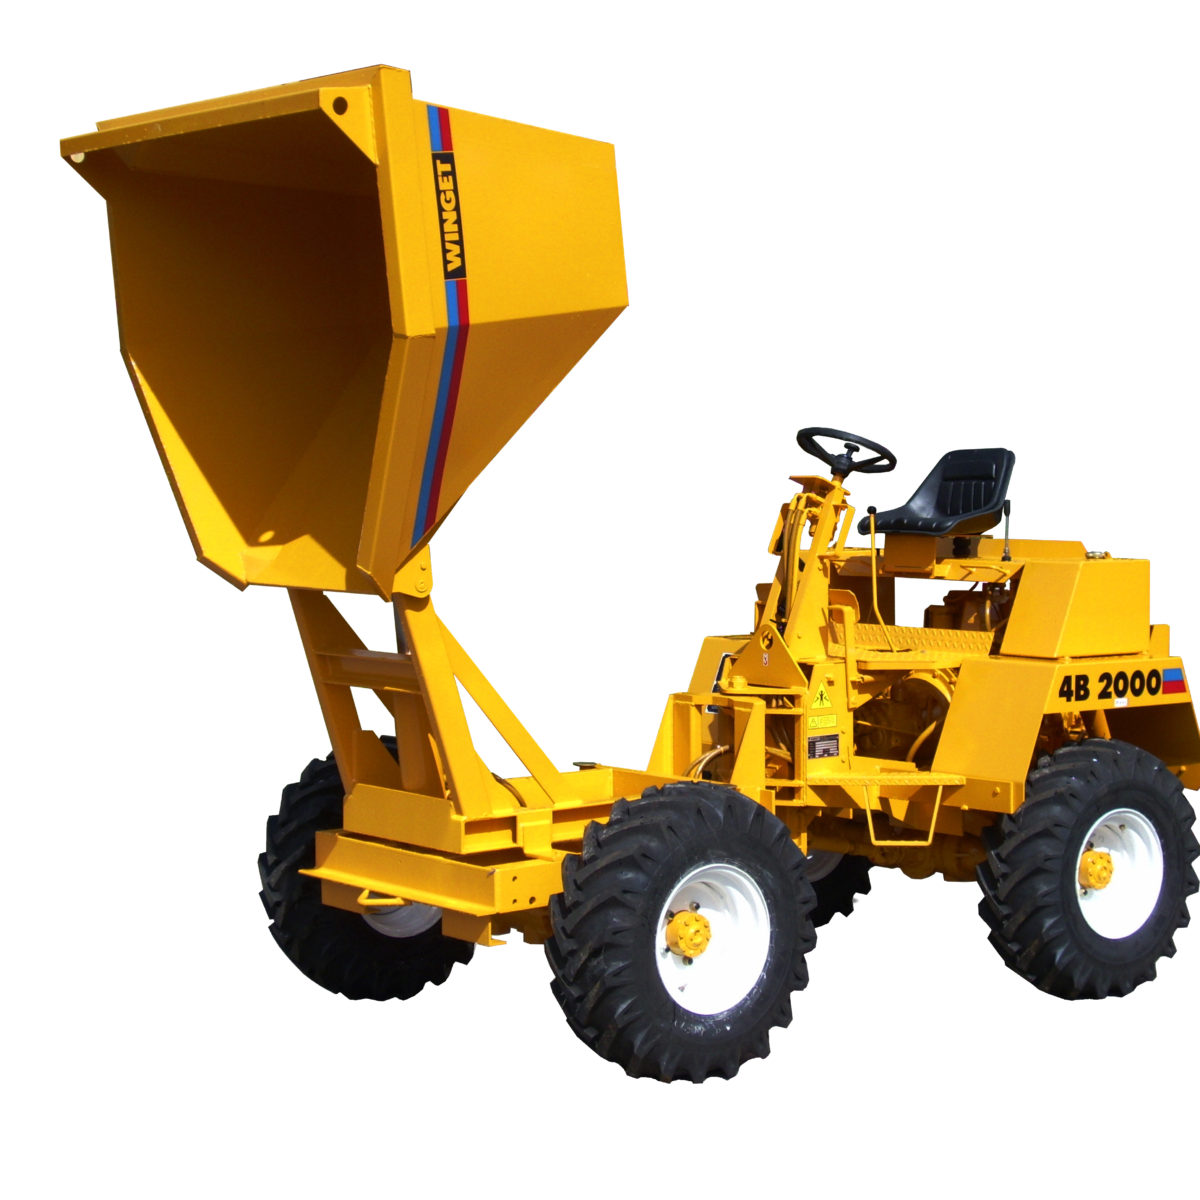 4B Range (4 wheel drive site dumpers)